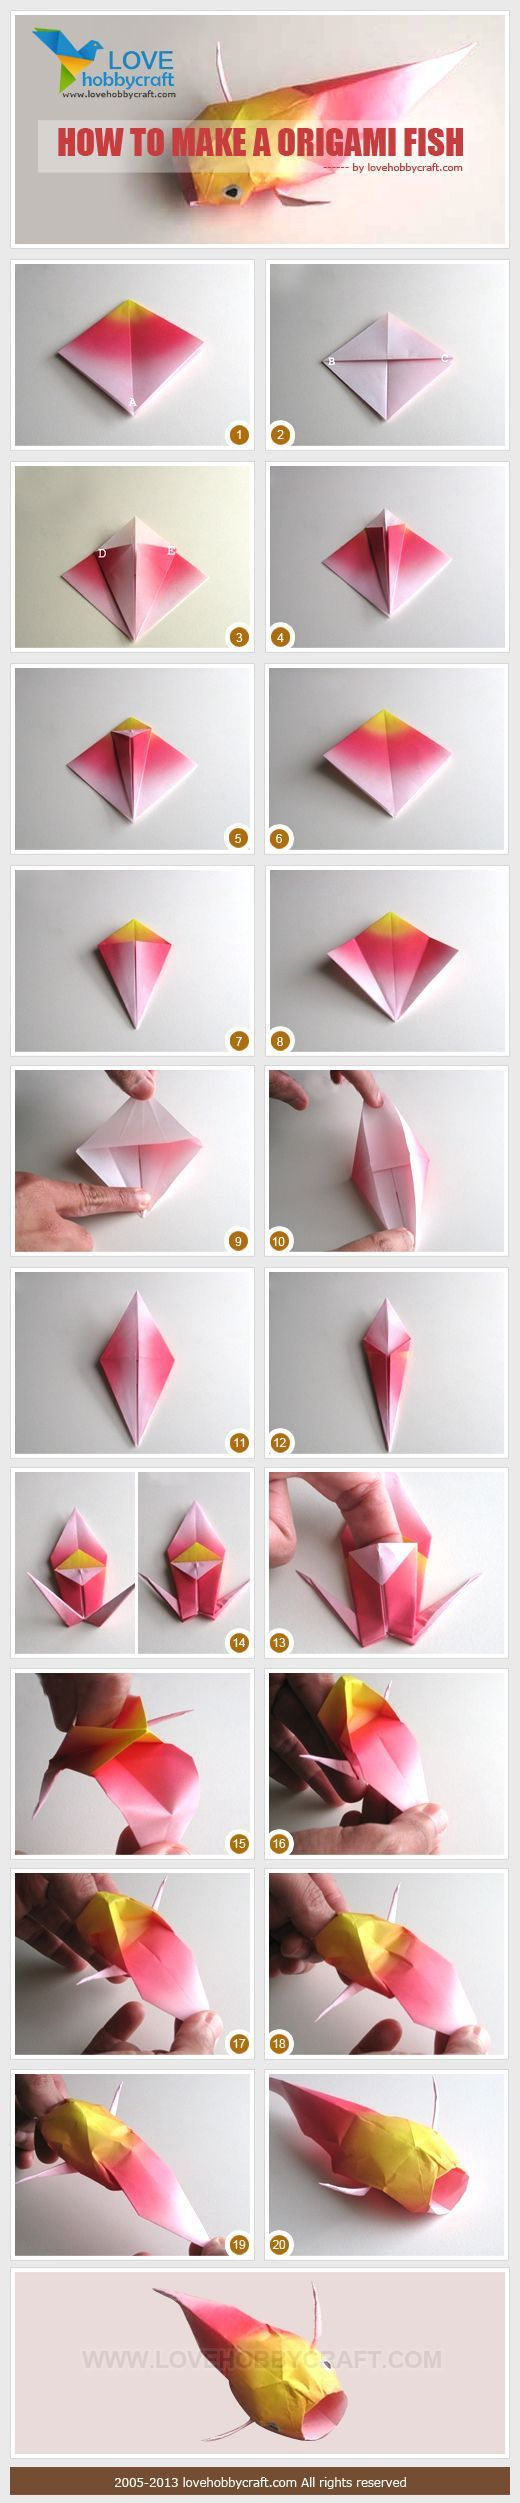 Best 25 origami fish ideas on pinterest koi origami for Origami fish instructions